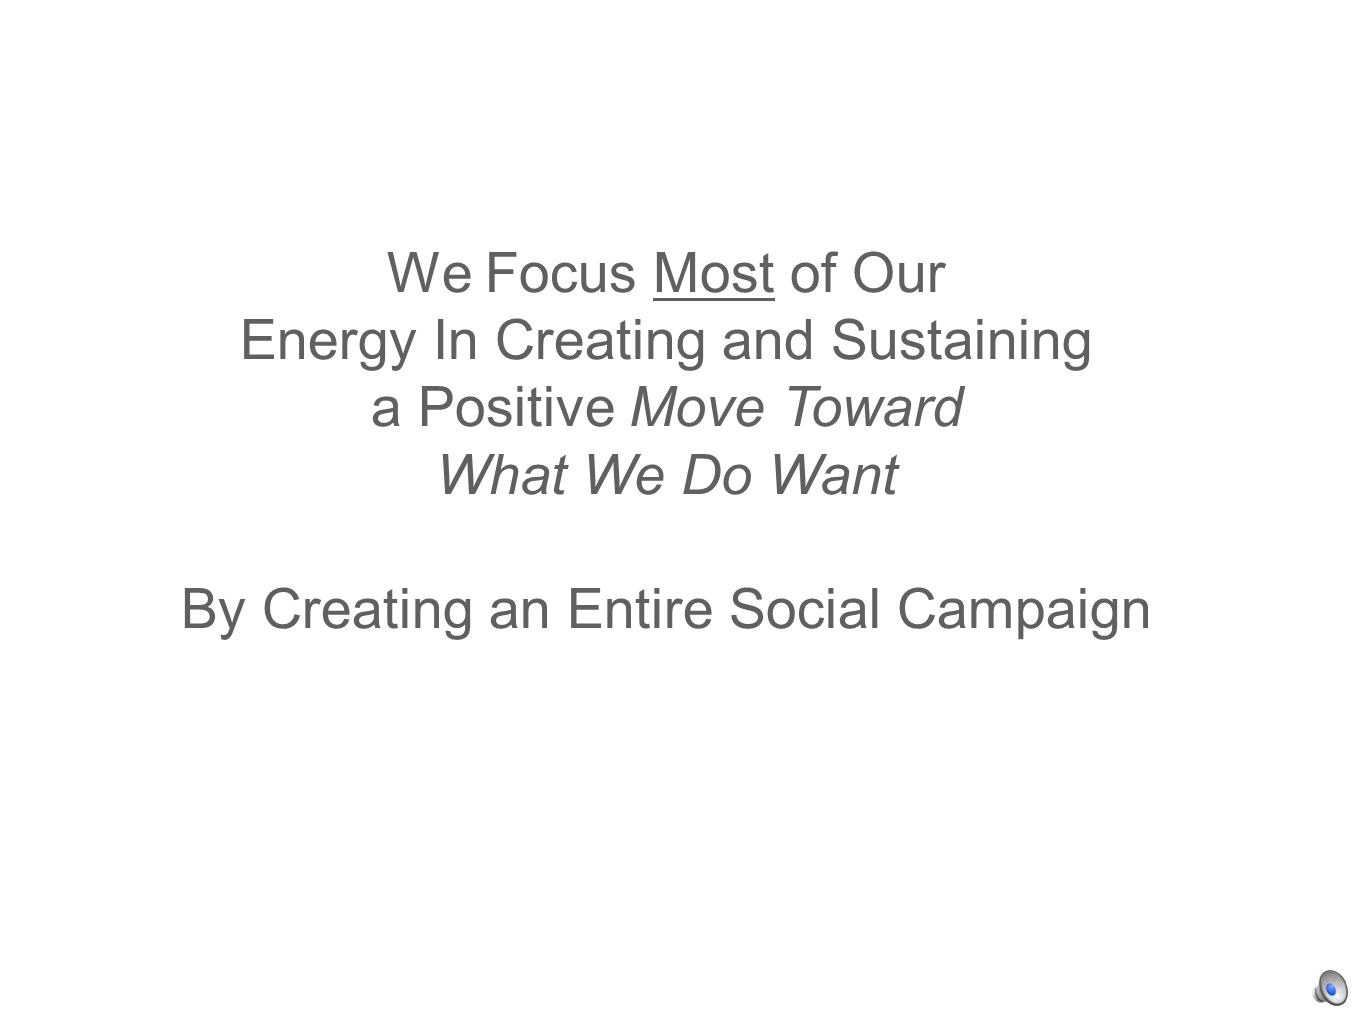 We Focus Most of Our Energy In Creating and Sustaining a Positive Move Toward What We Do Want By Creating an Entire Social Campaign